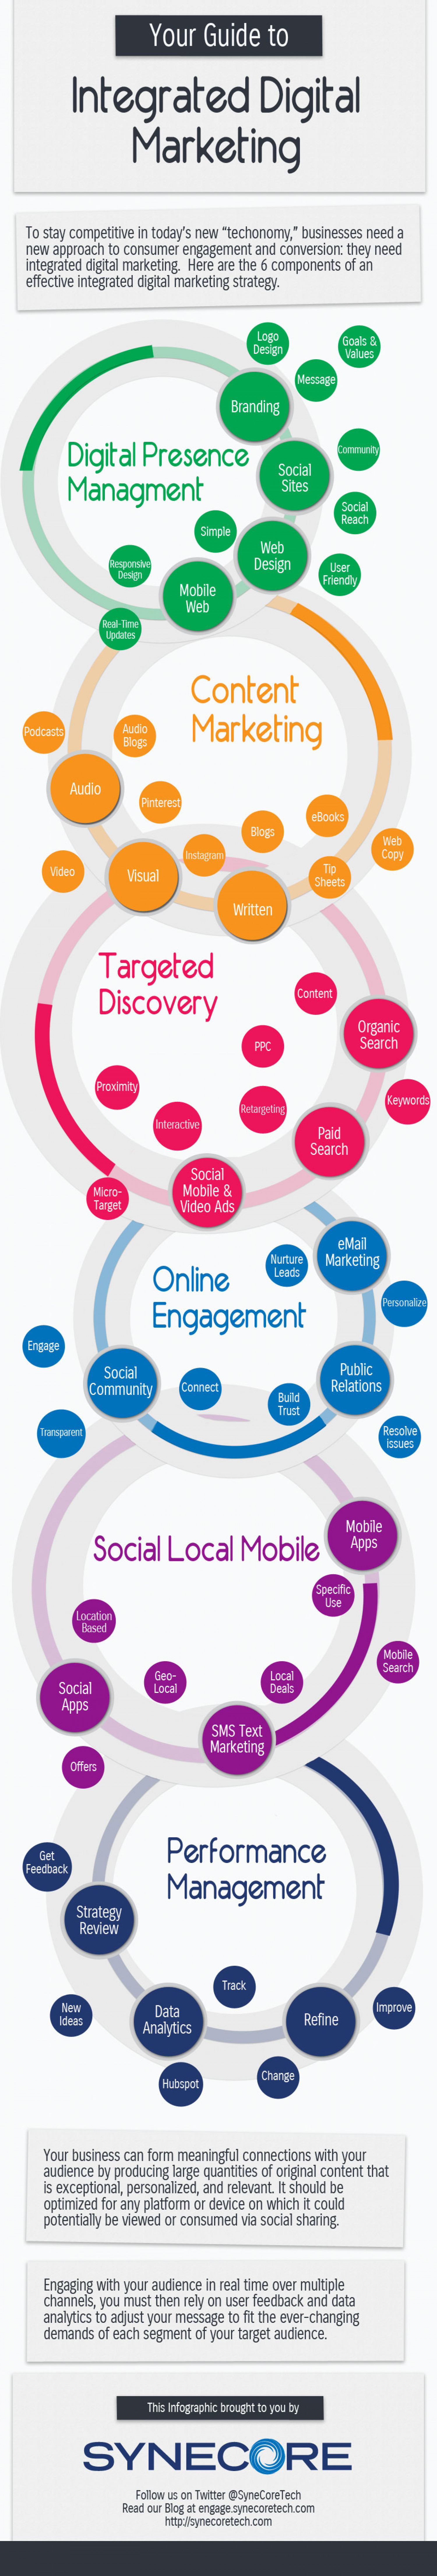 A Guide to Integrated Digital Marketing Infographic